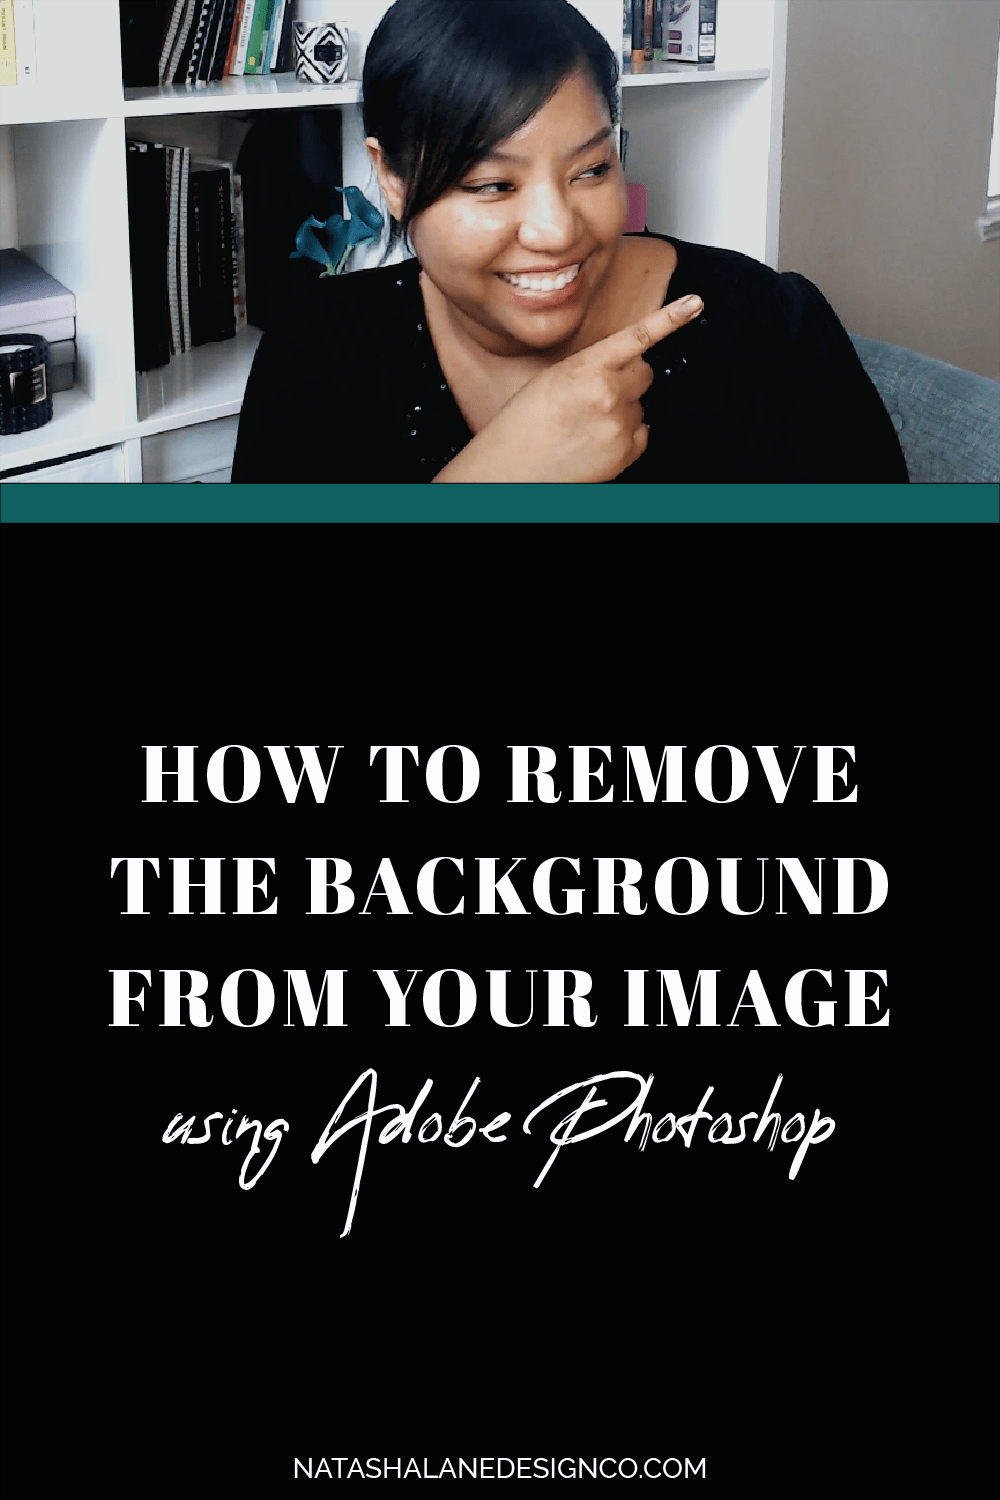 How to remove the background from your image to create